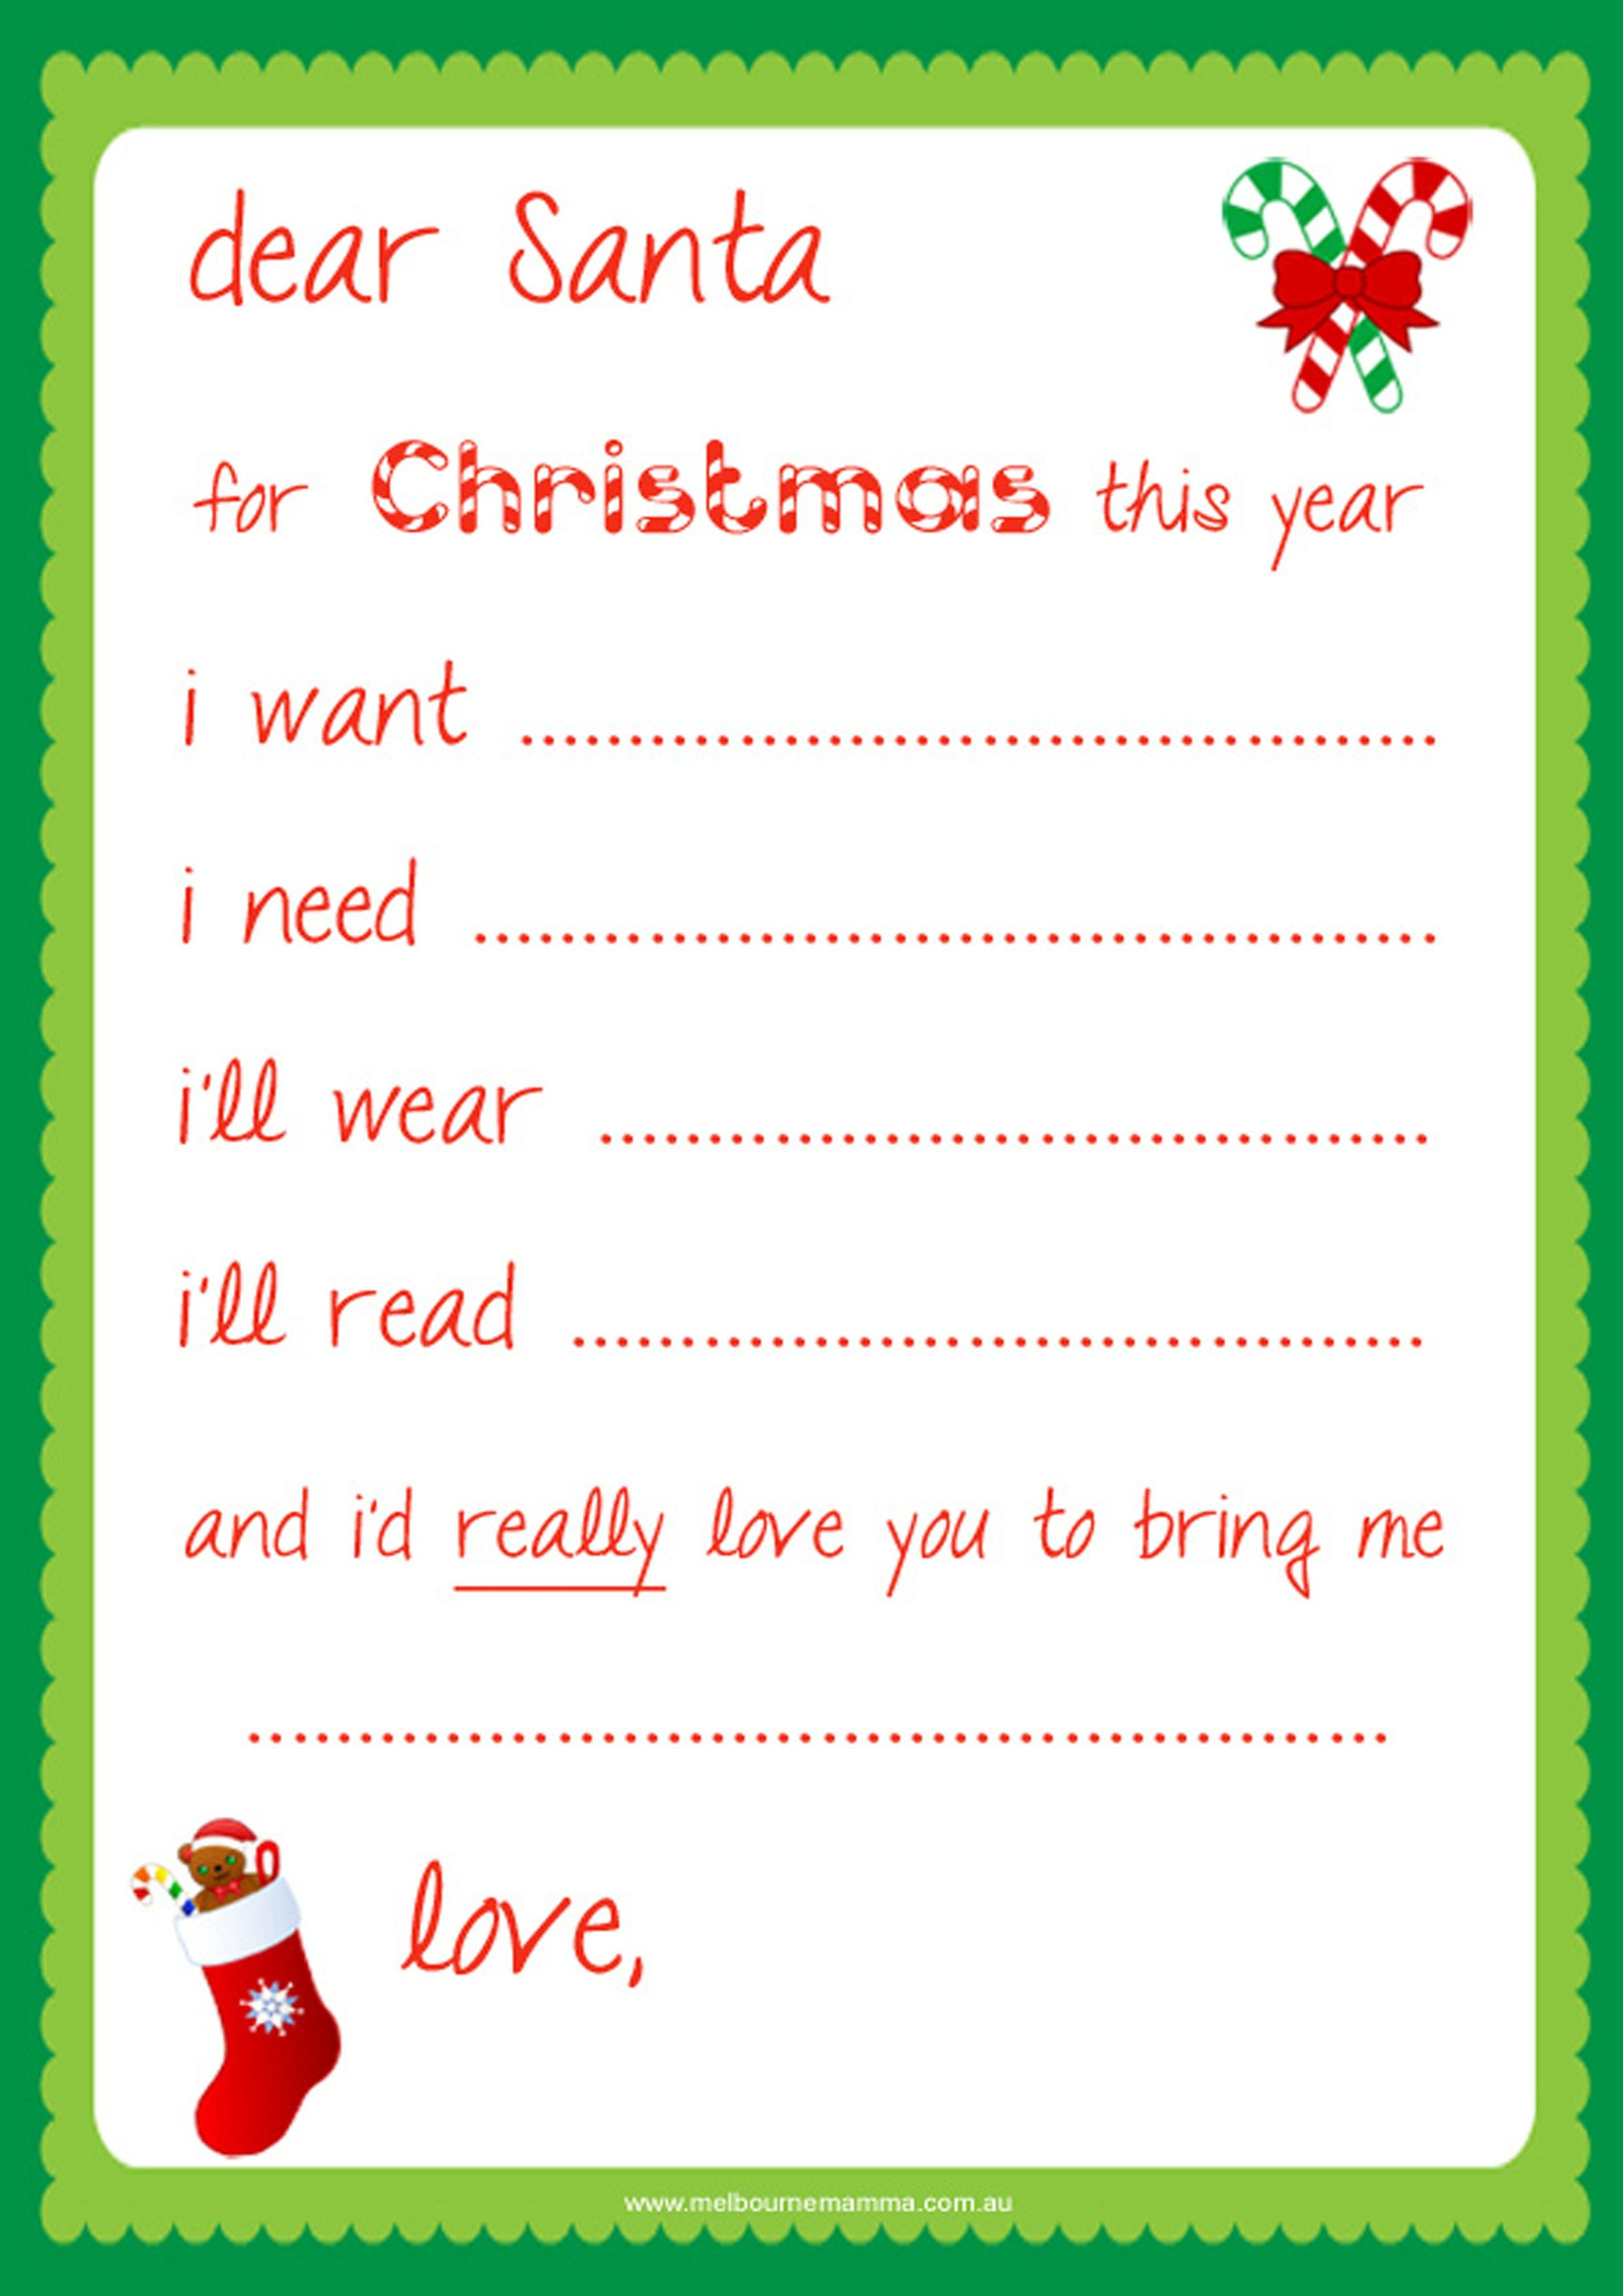 Dear Santa Letter Template Free Examples  Letter Cover Templates For Dear Santa Template Kindergarten Letter